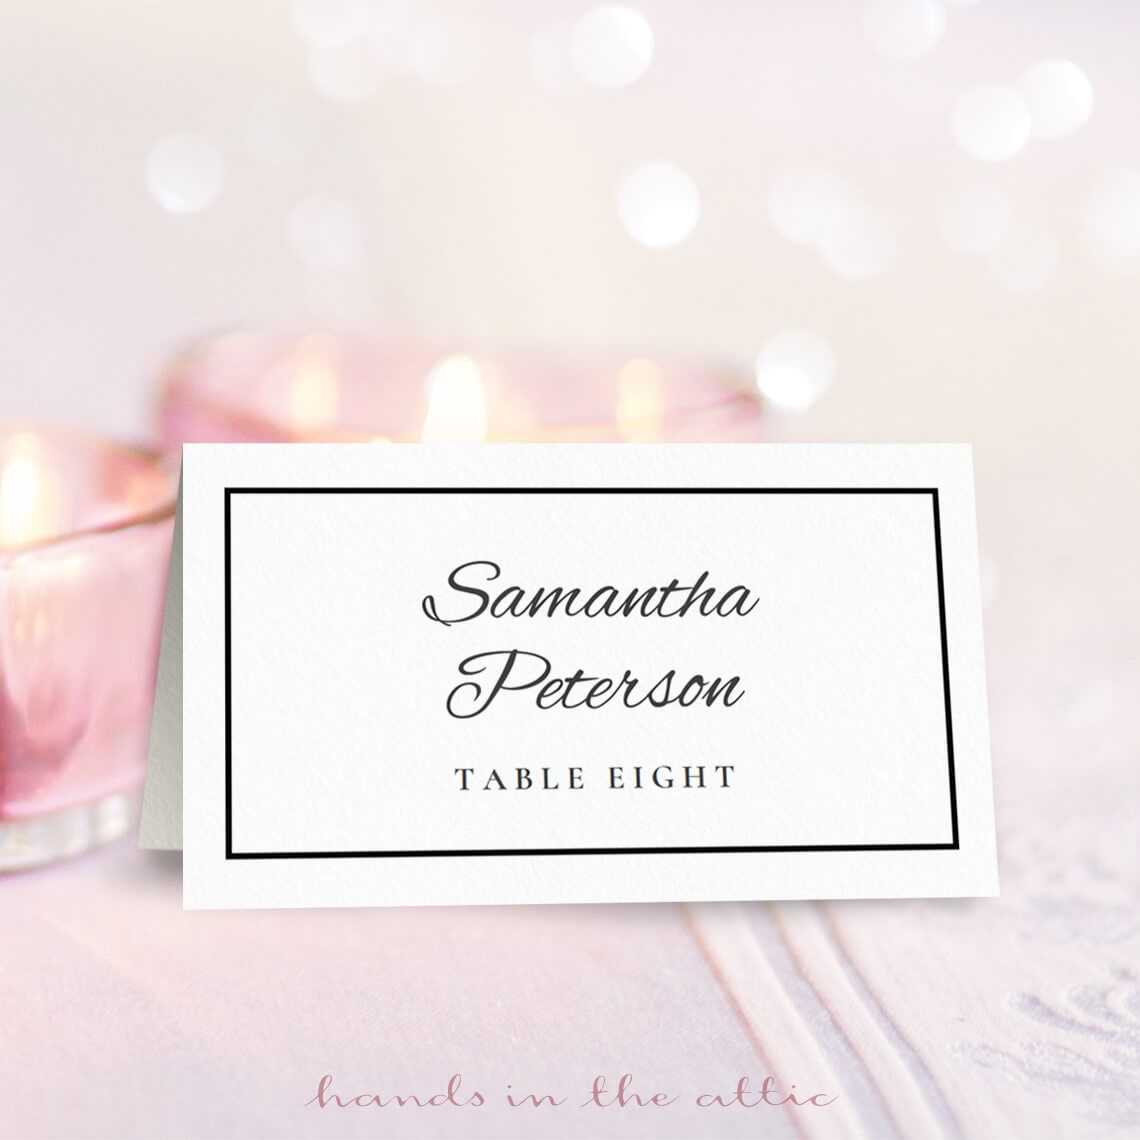 Wedding Place Card Template | Free On Handsintheattic With Table Place Card Template Free Download